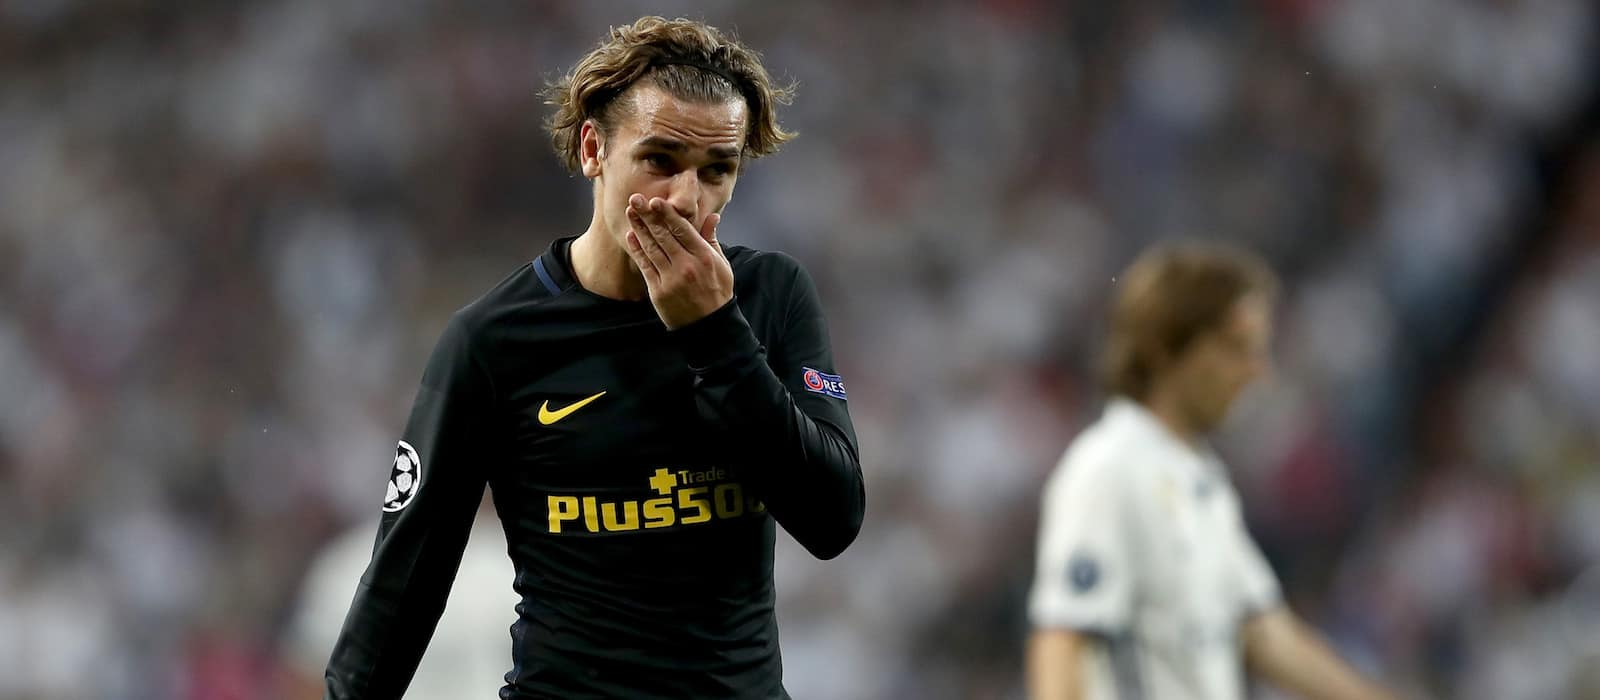 Antoine Griezmann reaches agreement to join Barcelona in the summer – report